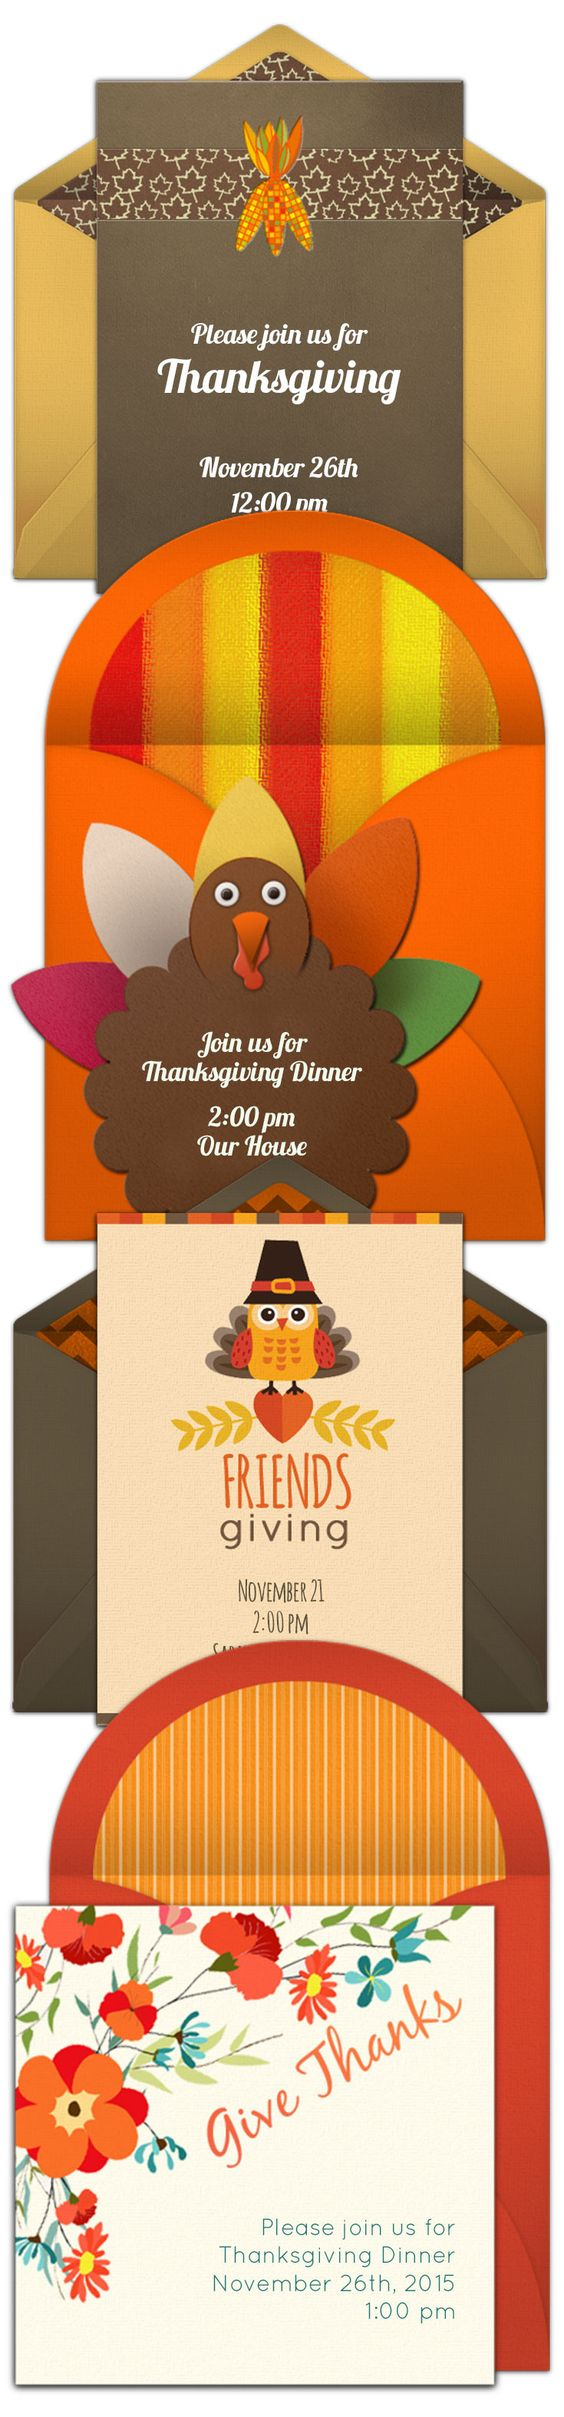 Paper invites are too formal, and emails are too casual. Get it just right with online invitations from Punchbowl. We've got everything you need for your Thanksgiving party. http://www.punchbowl.com/online-invitations/category/25/?utm_source=Pinterest&utm_medium=17.6P